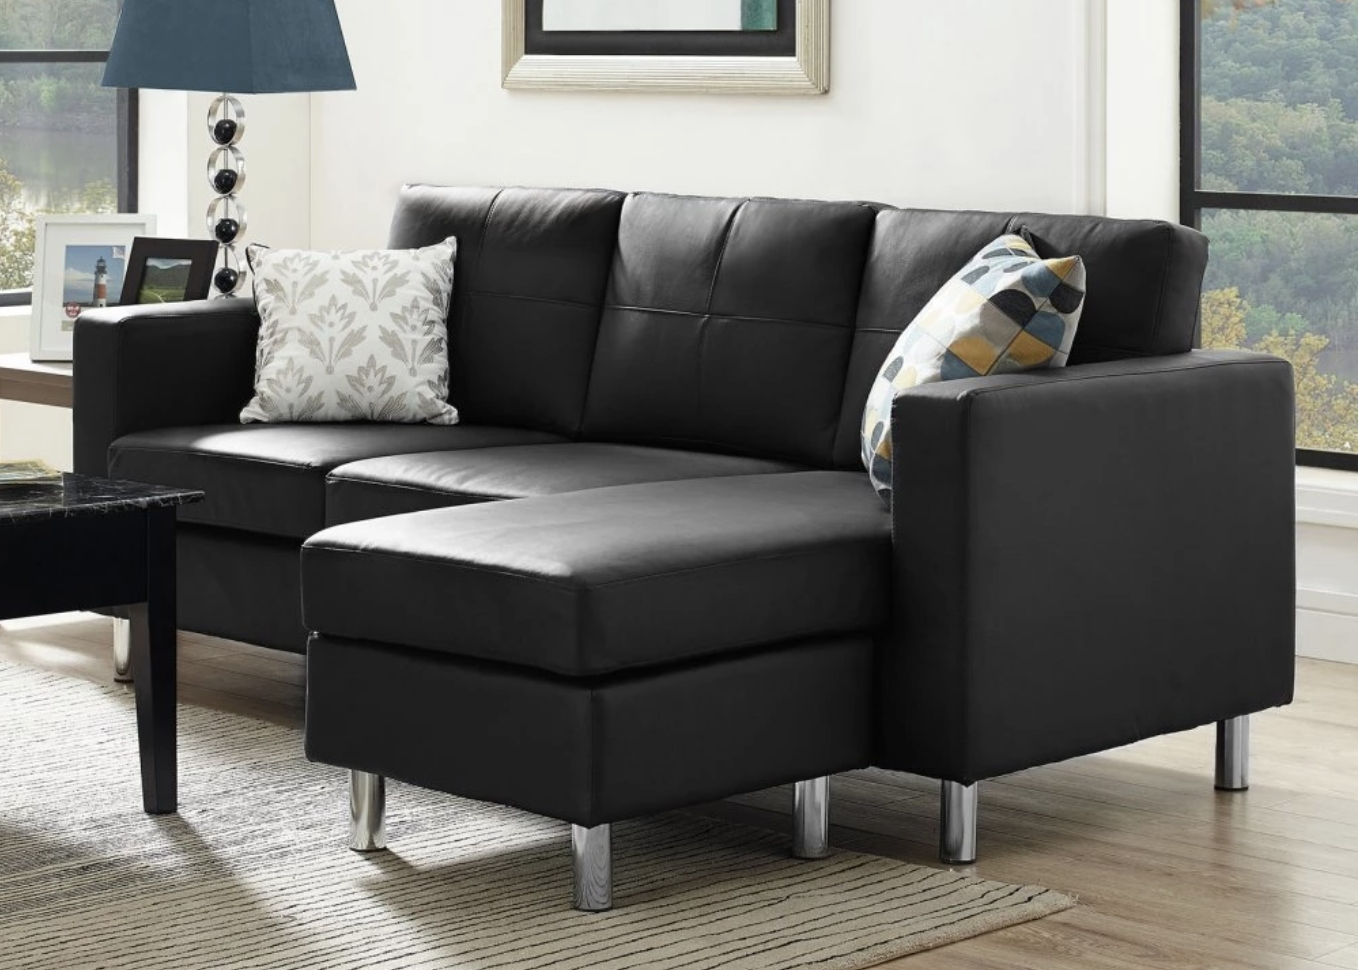 Sectional Sofas For Small Places Throughout Best And Newest 75 Modern Sectional Sofas For Small Spaces (2018) (View 8 of 20)